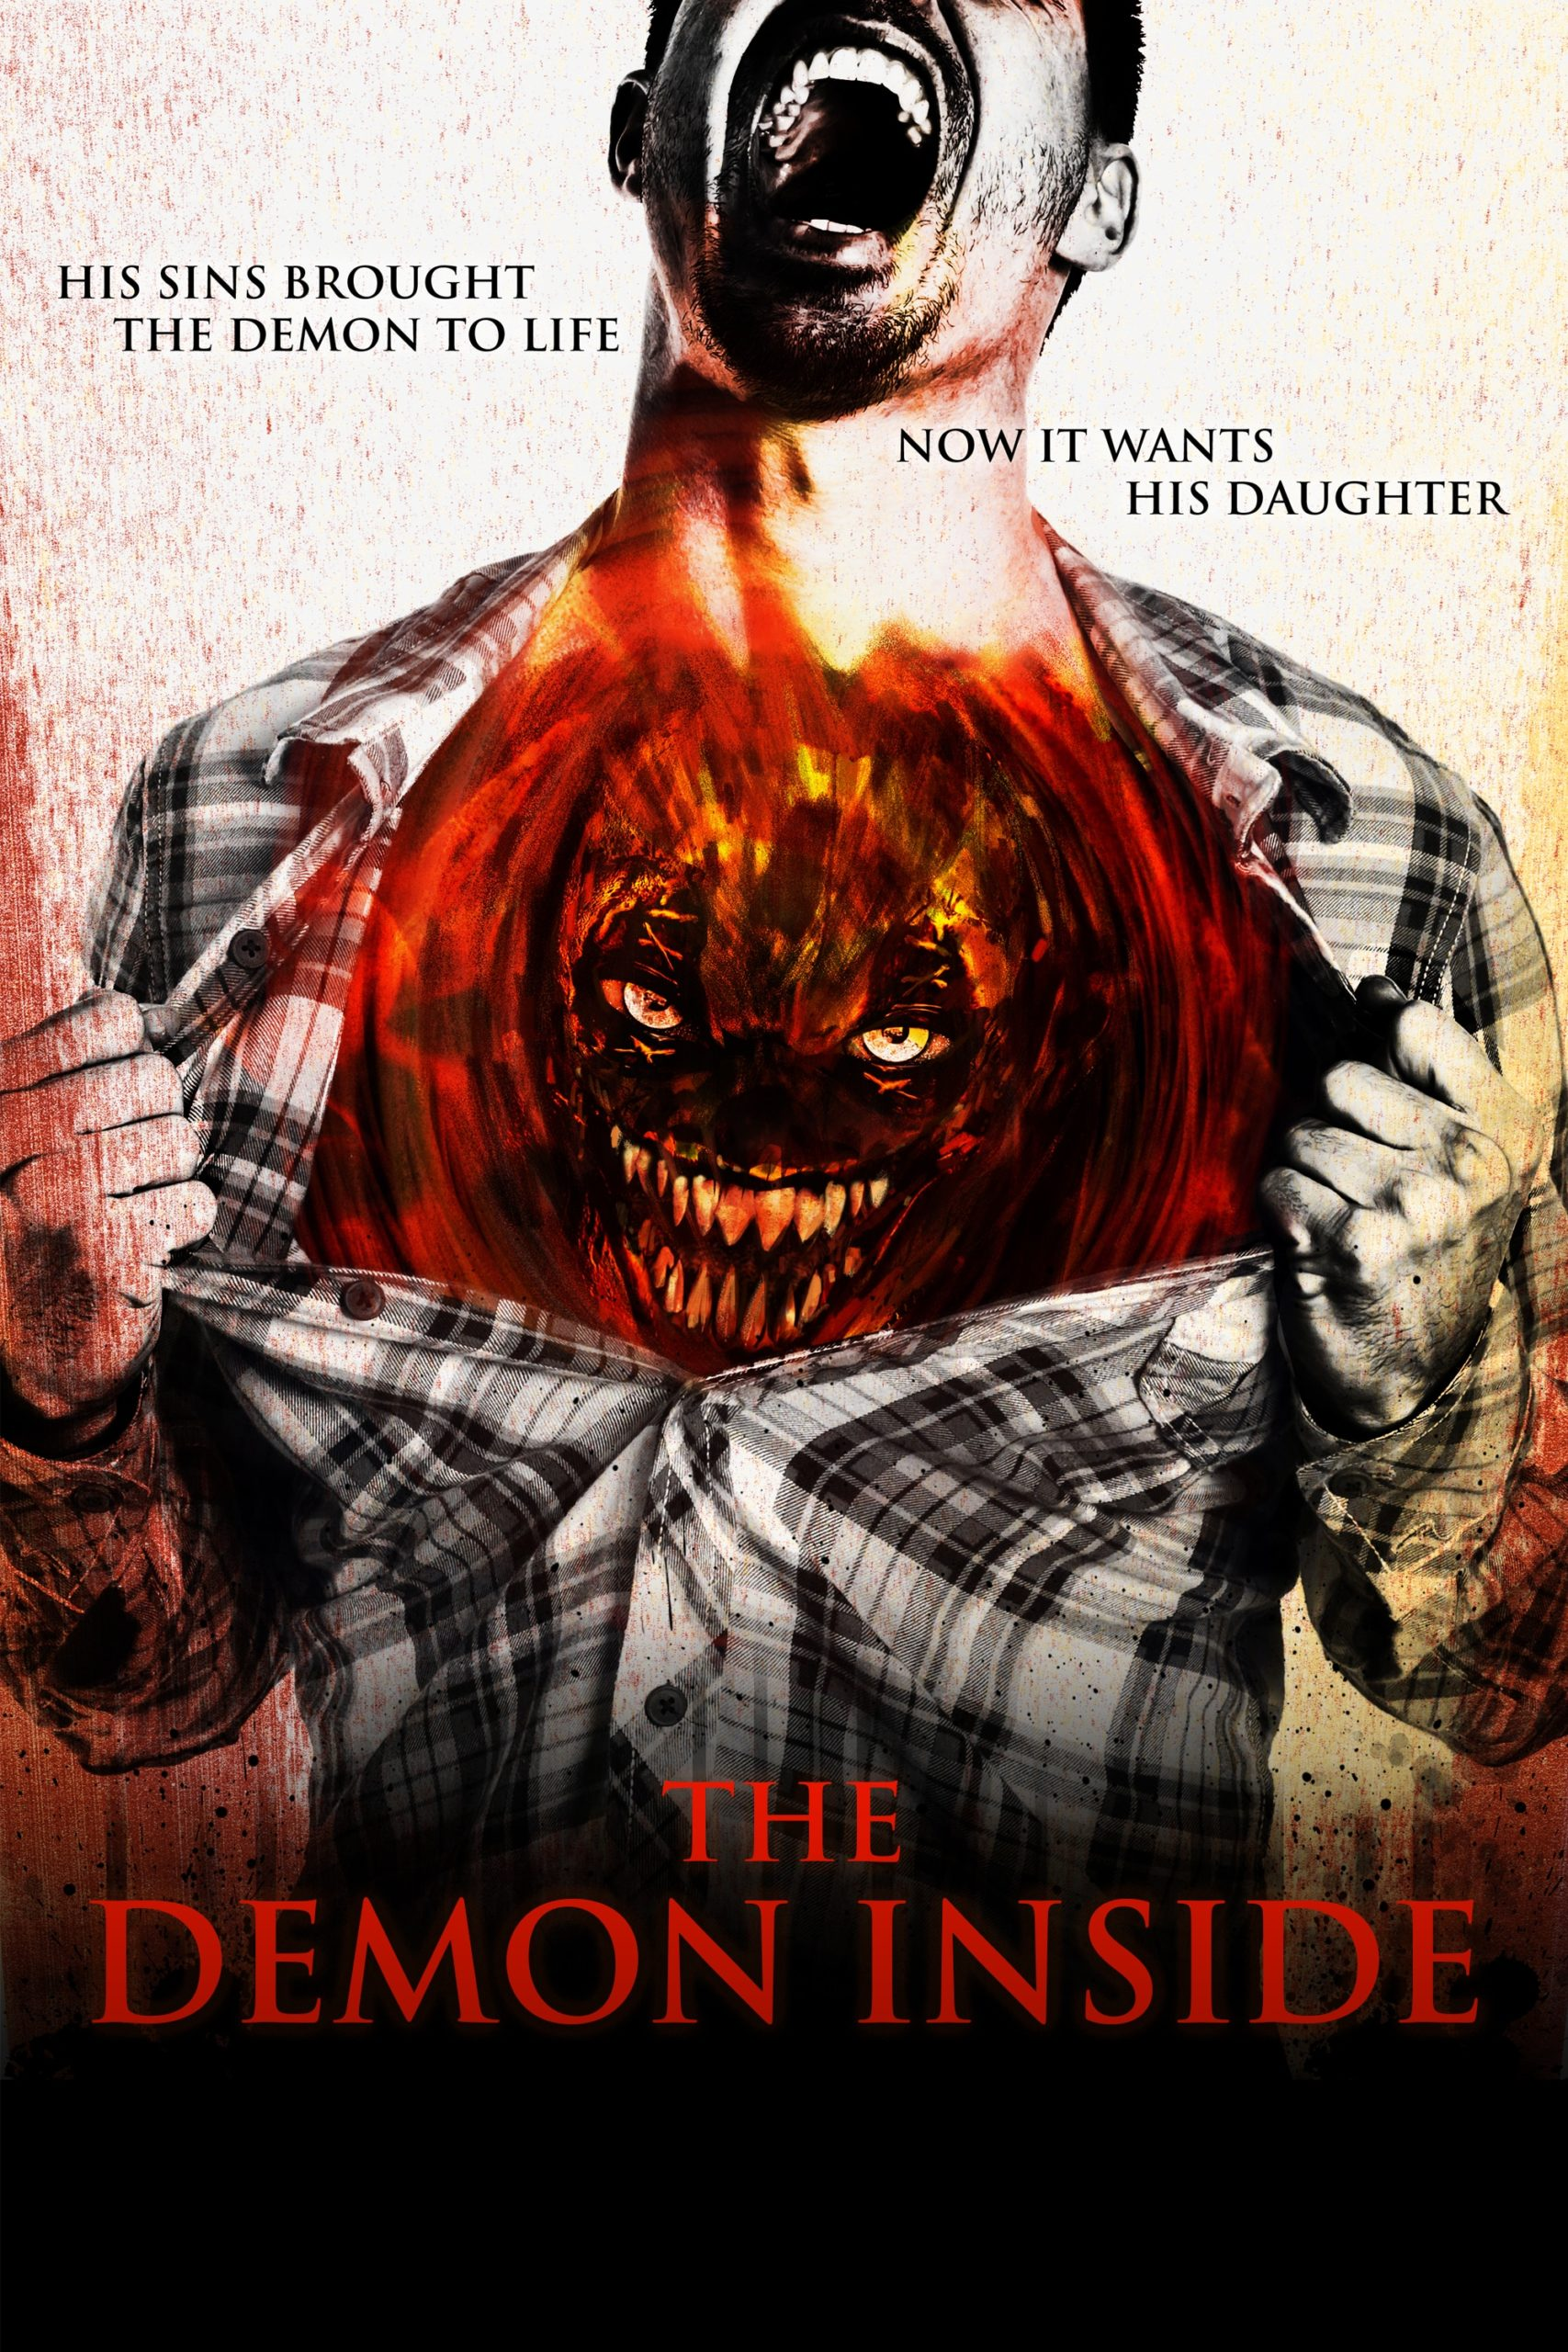 The Demon Inside